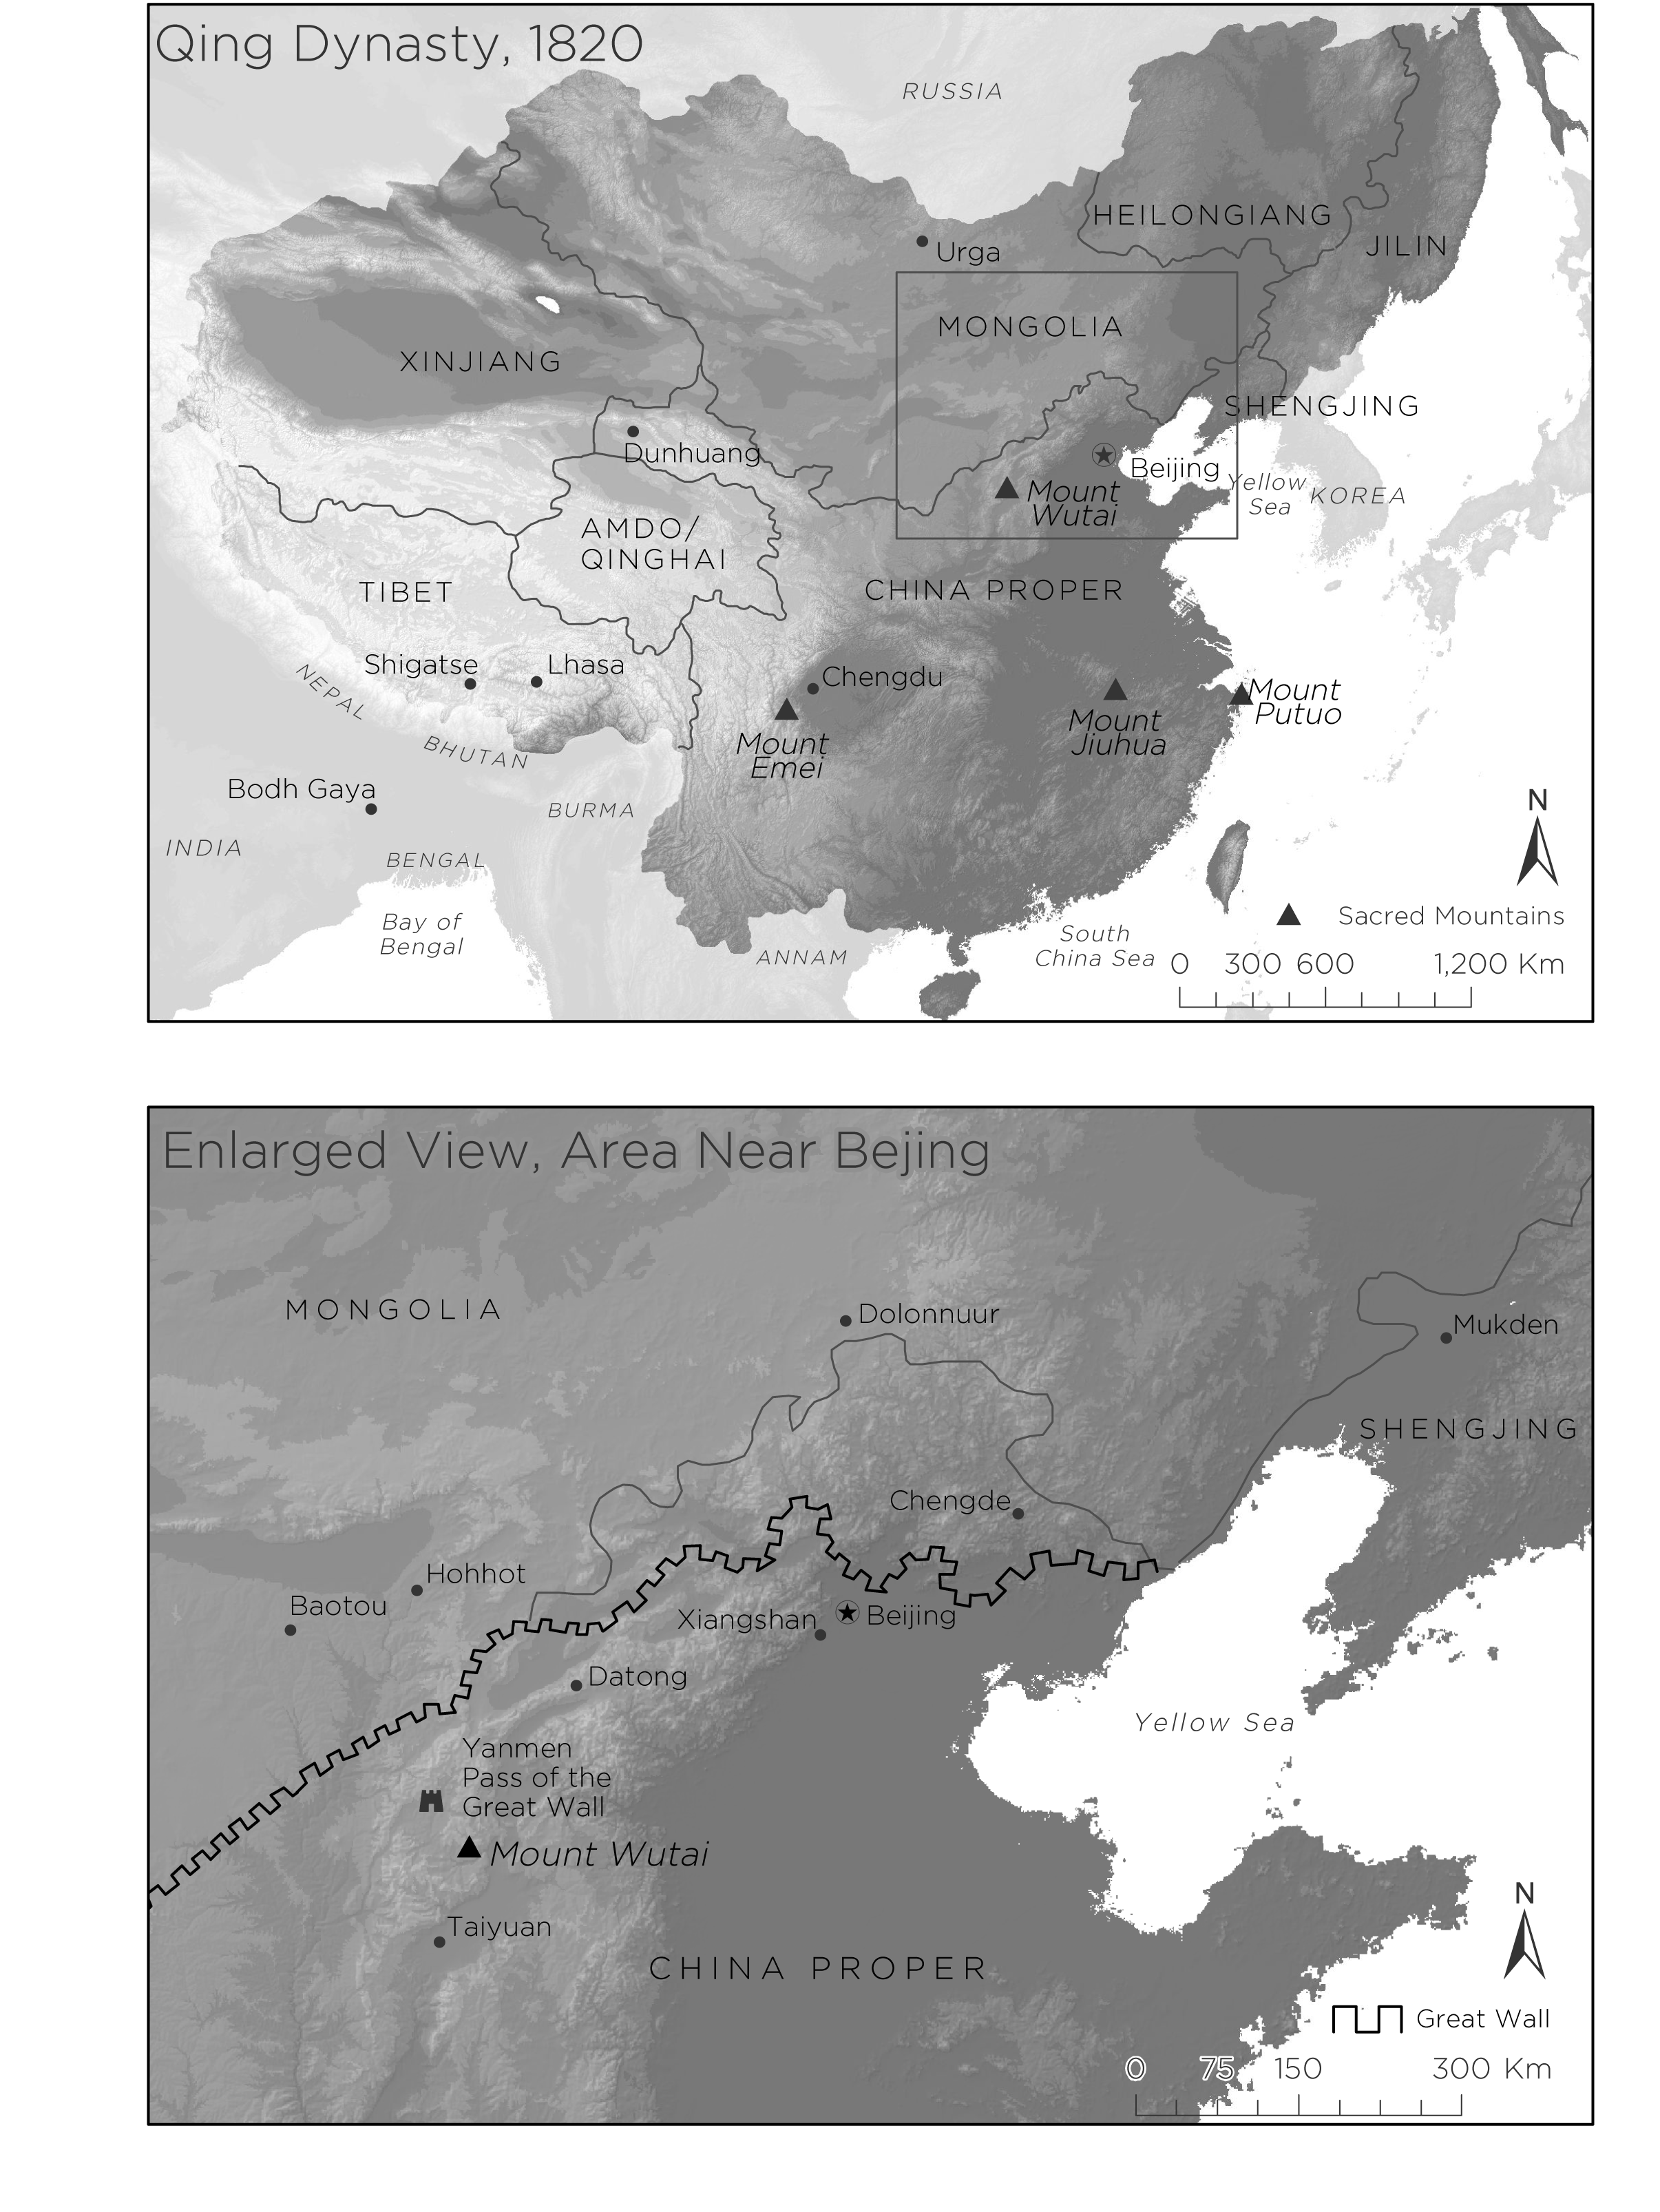 Qing Dynasty for Publication in an Academic Journal Article